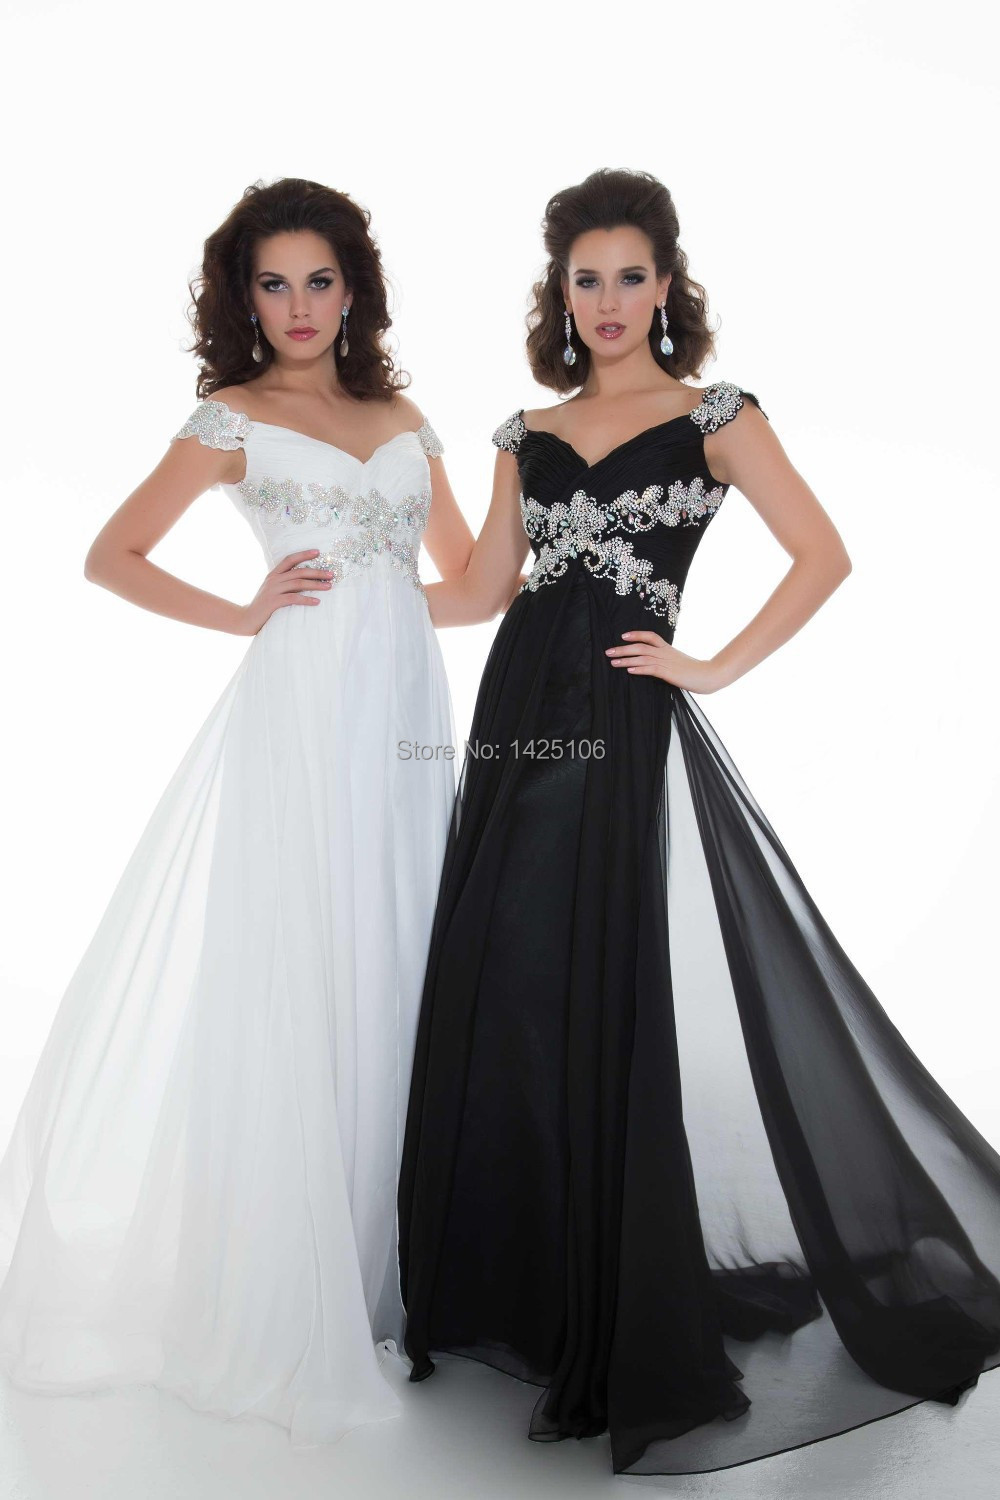 Black Prom Dress with Cap Sleeves